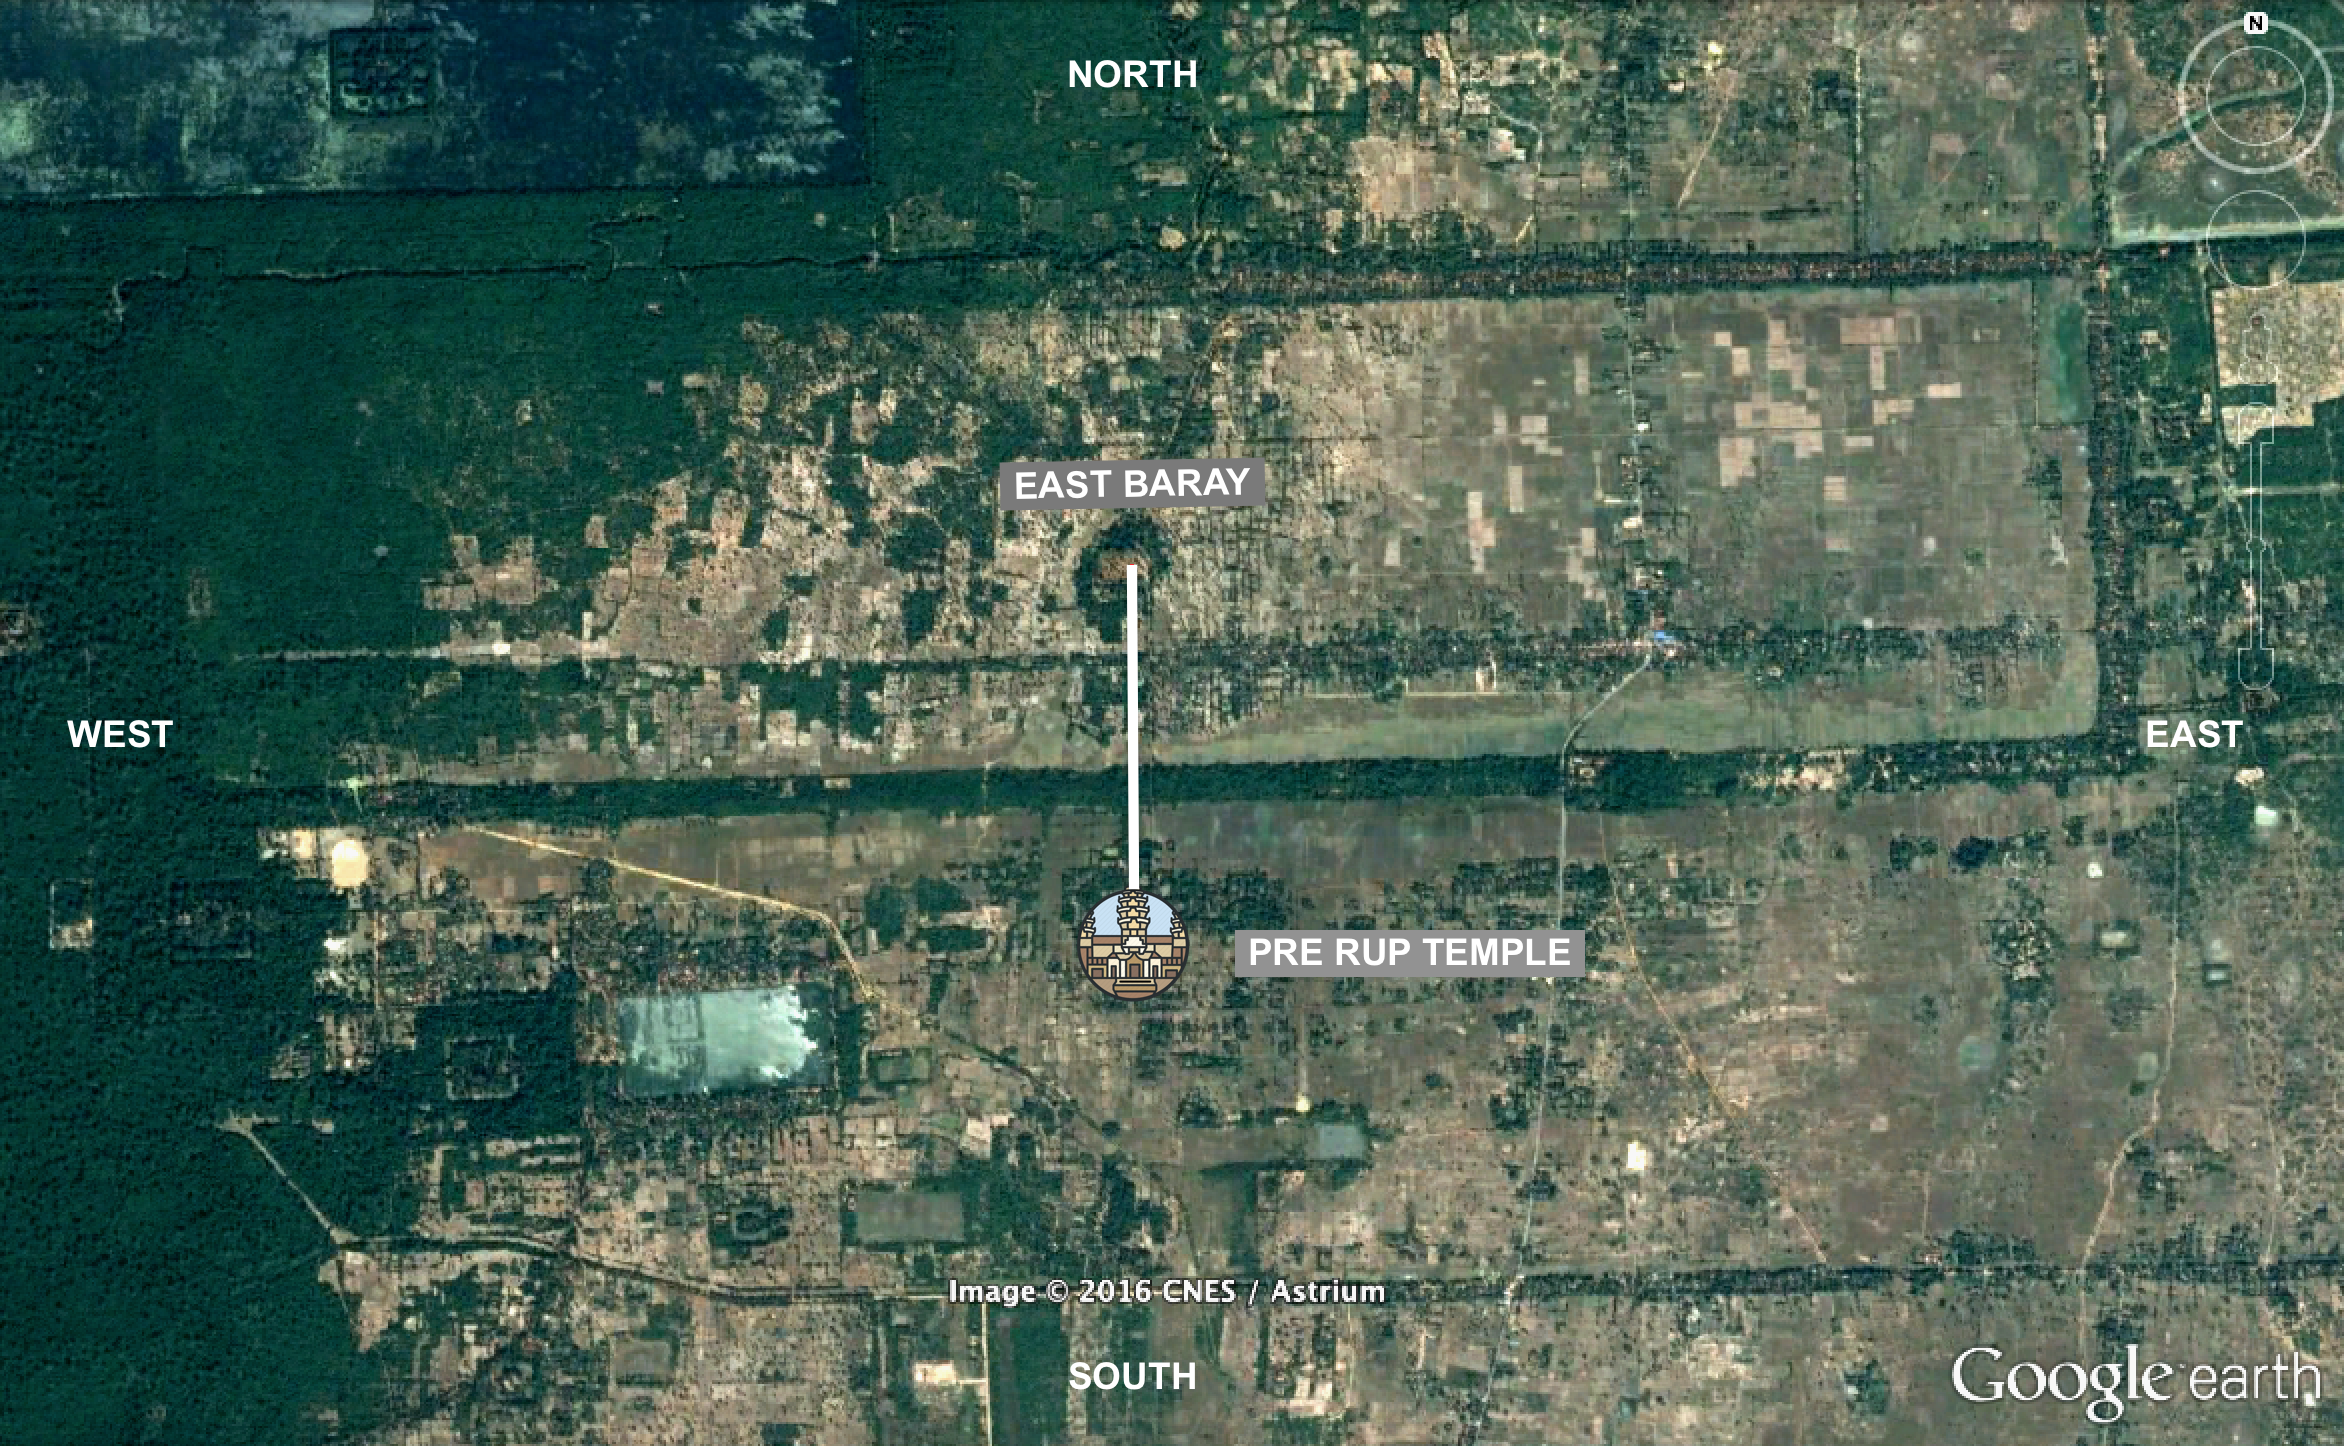 Rajendravarman II built Pre Rue temple on precisely the same meridian as the central axis of the East Baray.